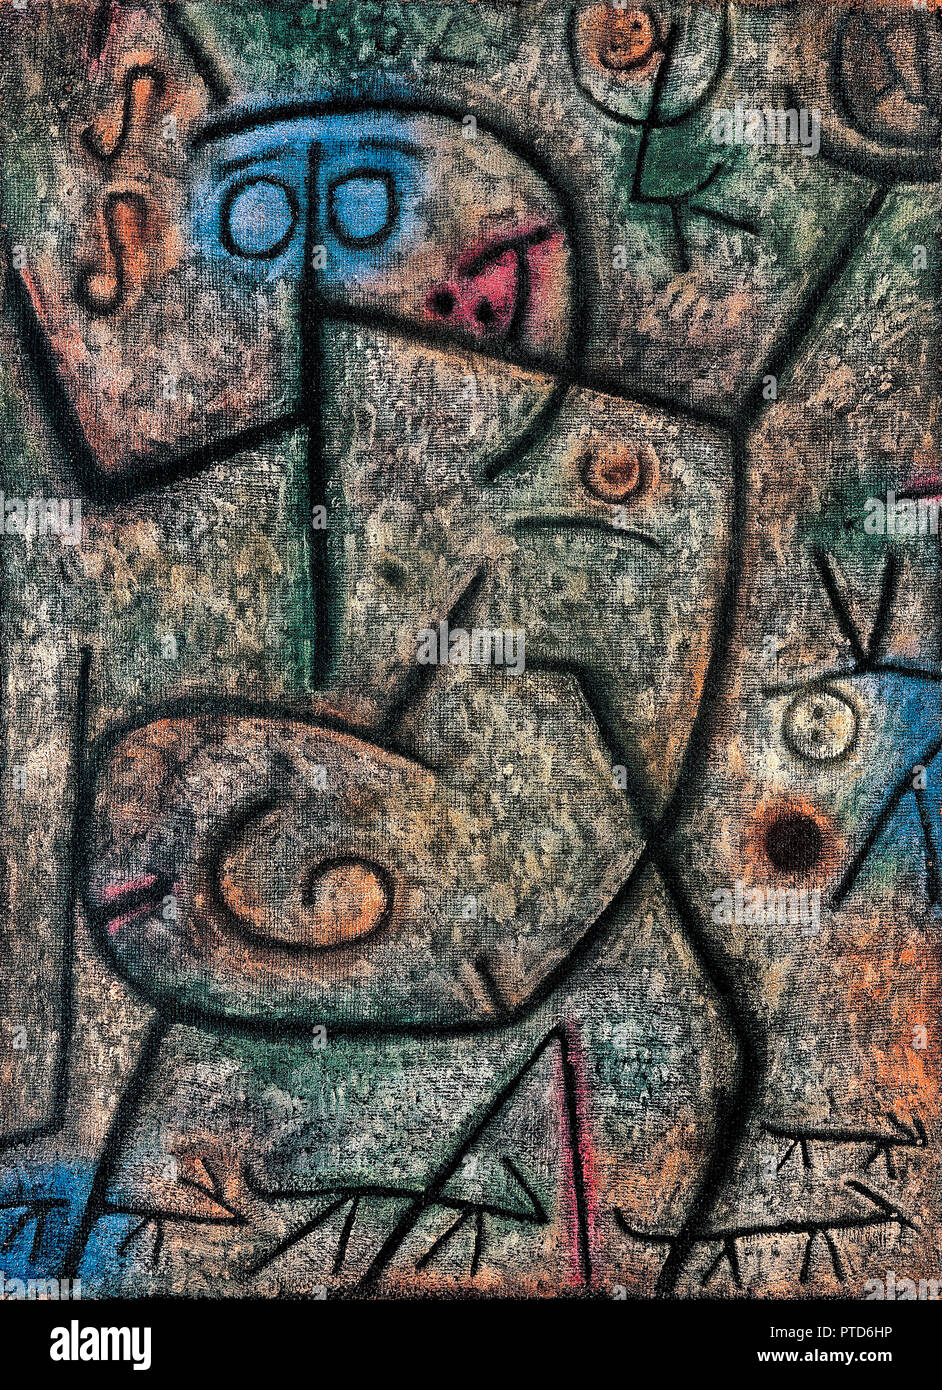 Paul Klee, Oh! These Rumors! 1939 Oil on canvas, Beyeler Foundation, Riehen, Switzerland. - Stock Image